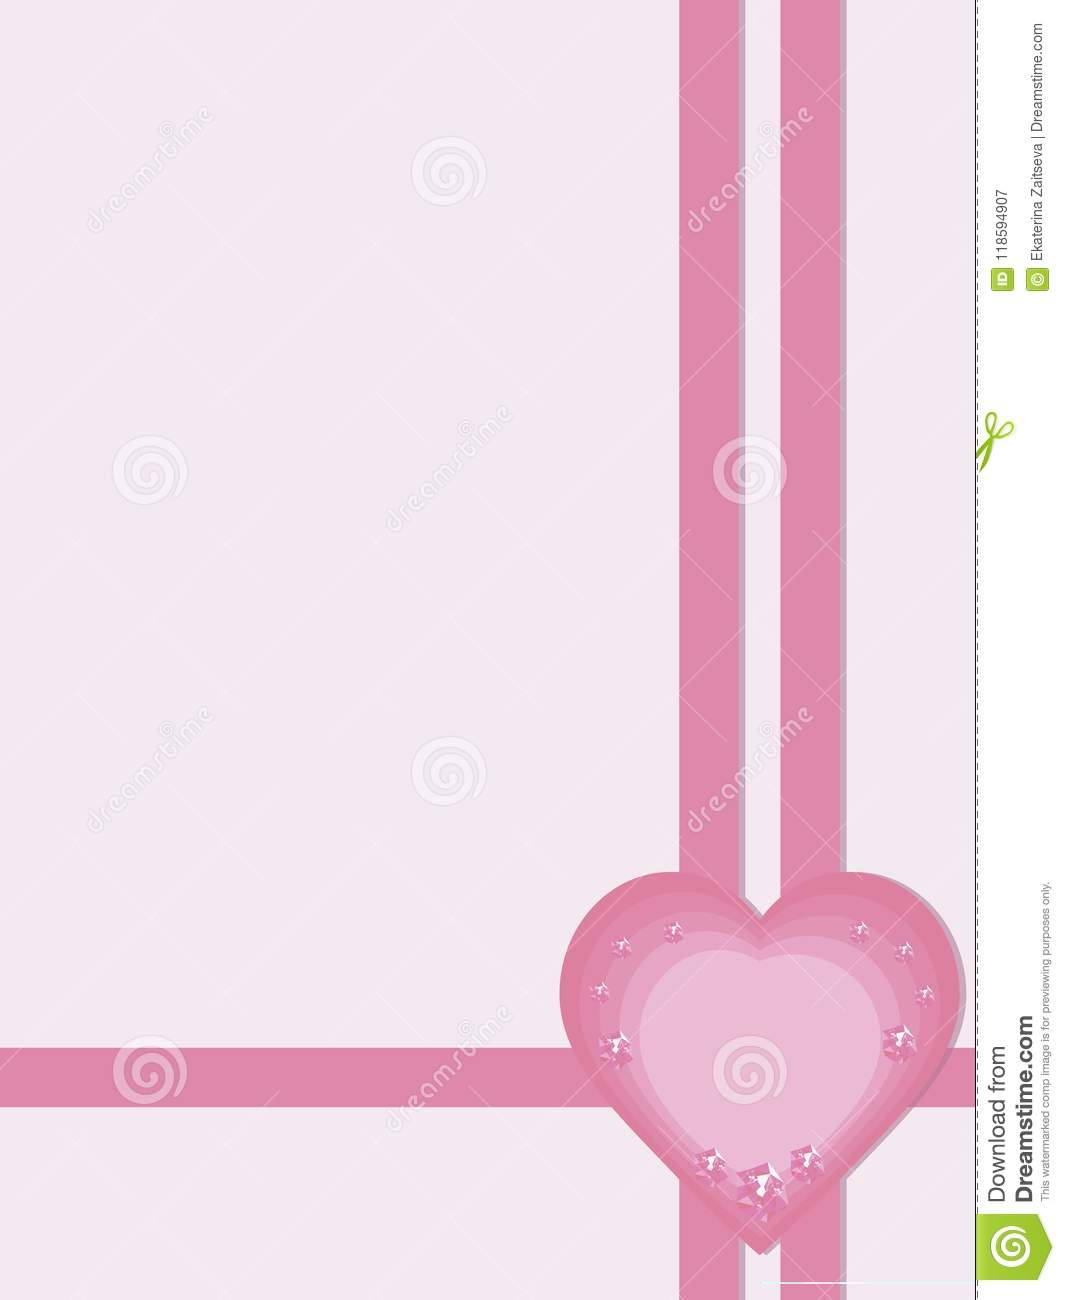 pink light greeting card gift invitation page congratulation